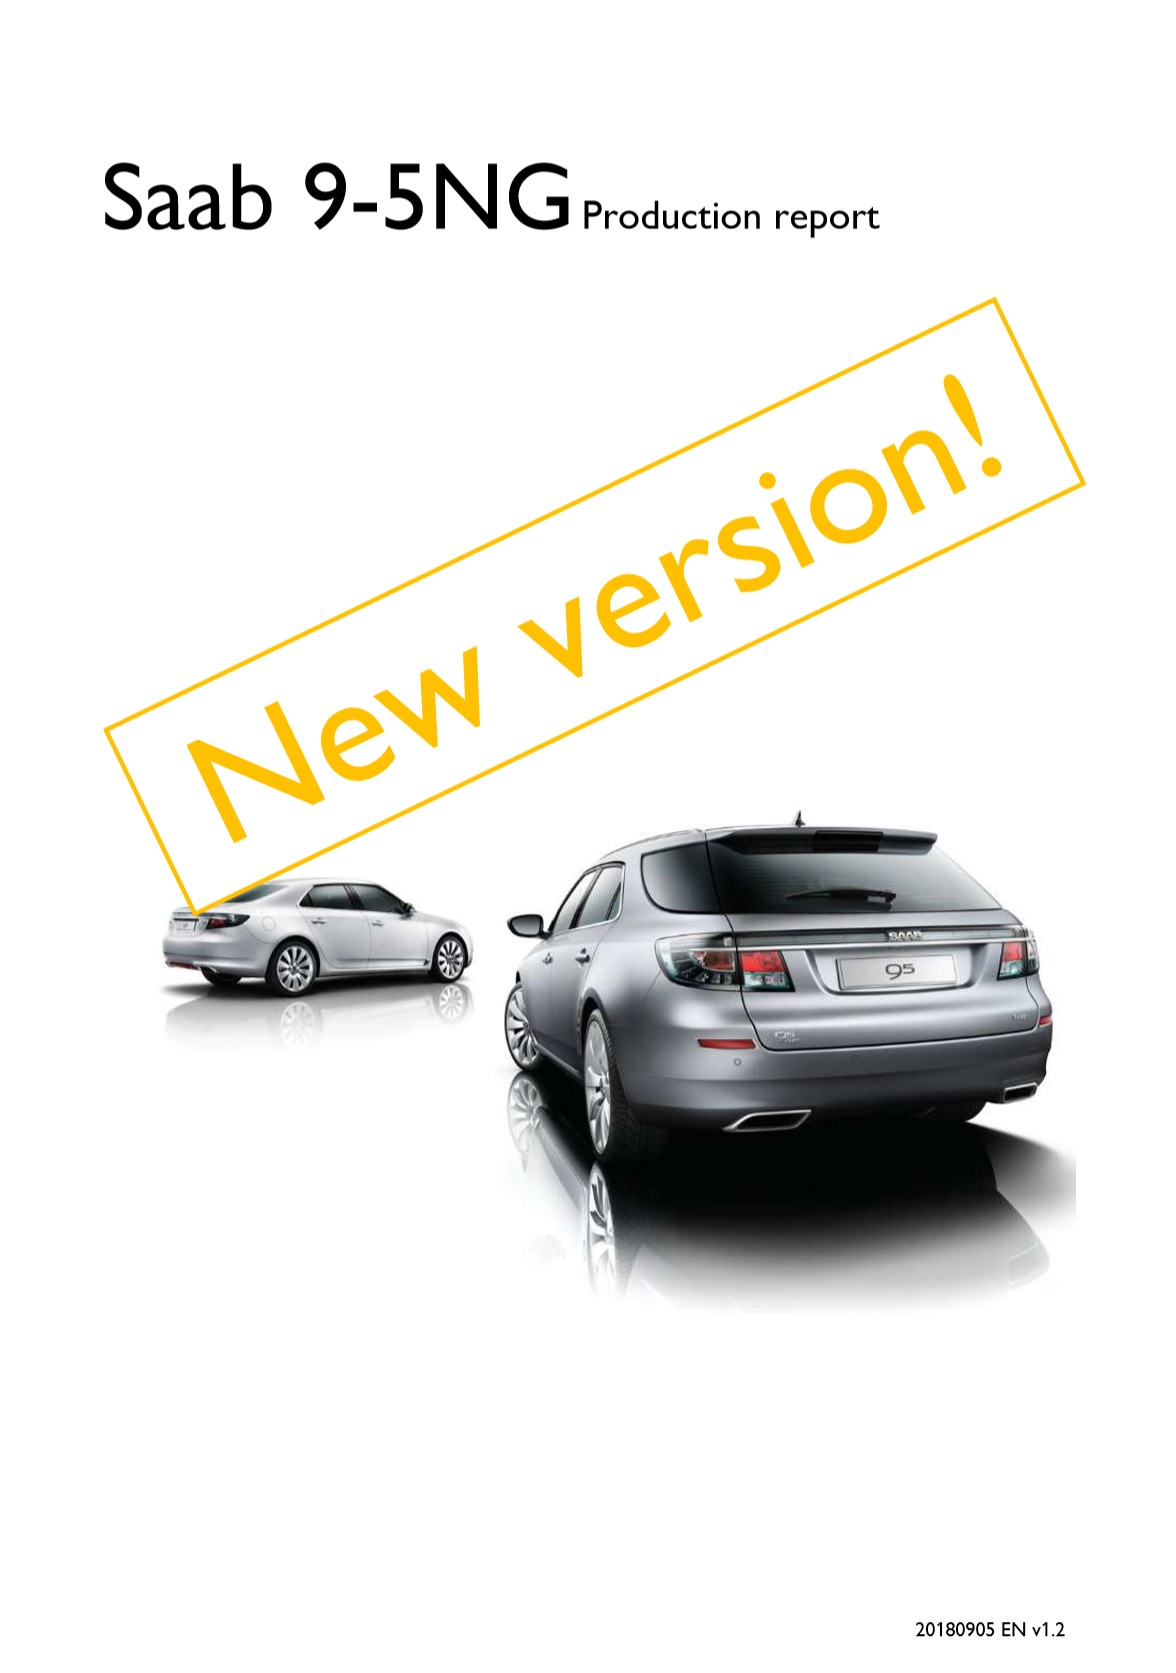 The First Public Version Of Saab 9 5NG Production Report Was Released Sparking Enormous Intrest From Fans All Around World Today On 5